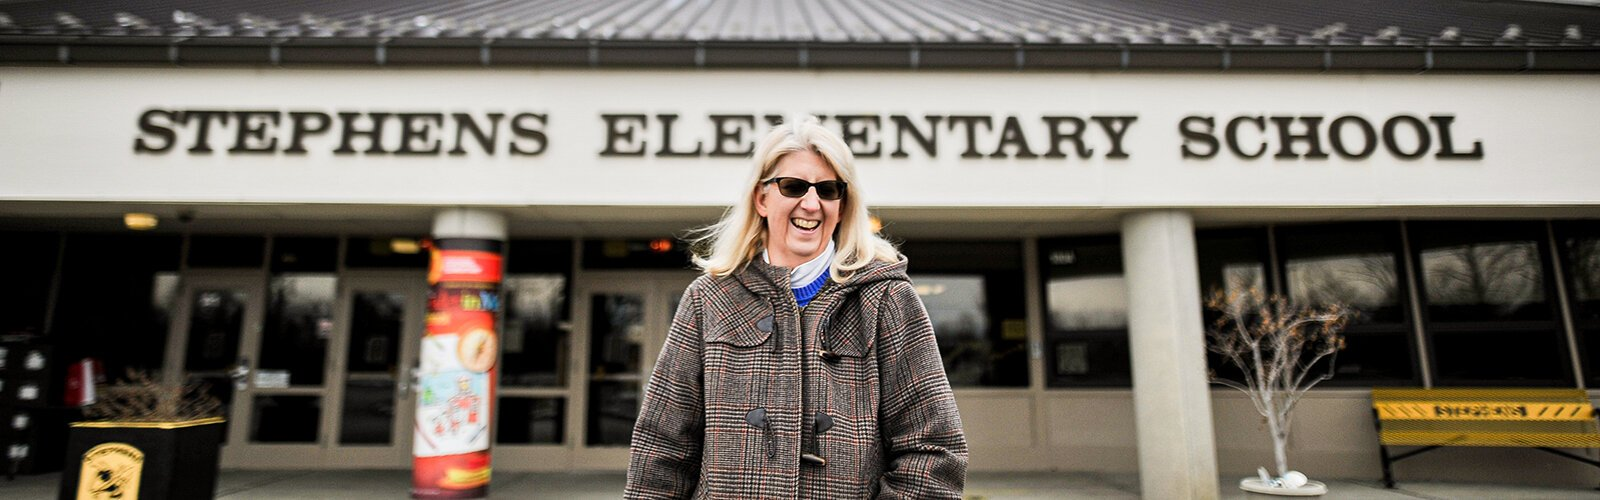 Julie Pile's interest in education started as a PTA volunteer at Stephens Elementary.